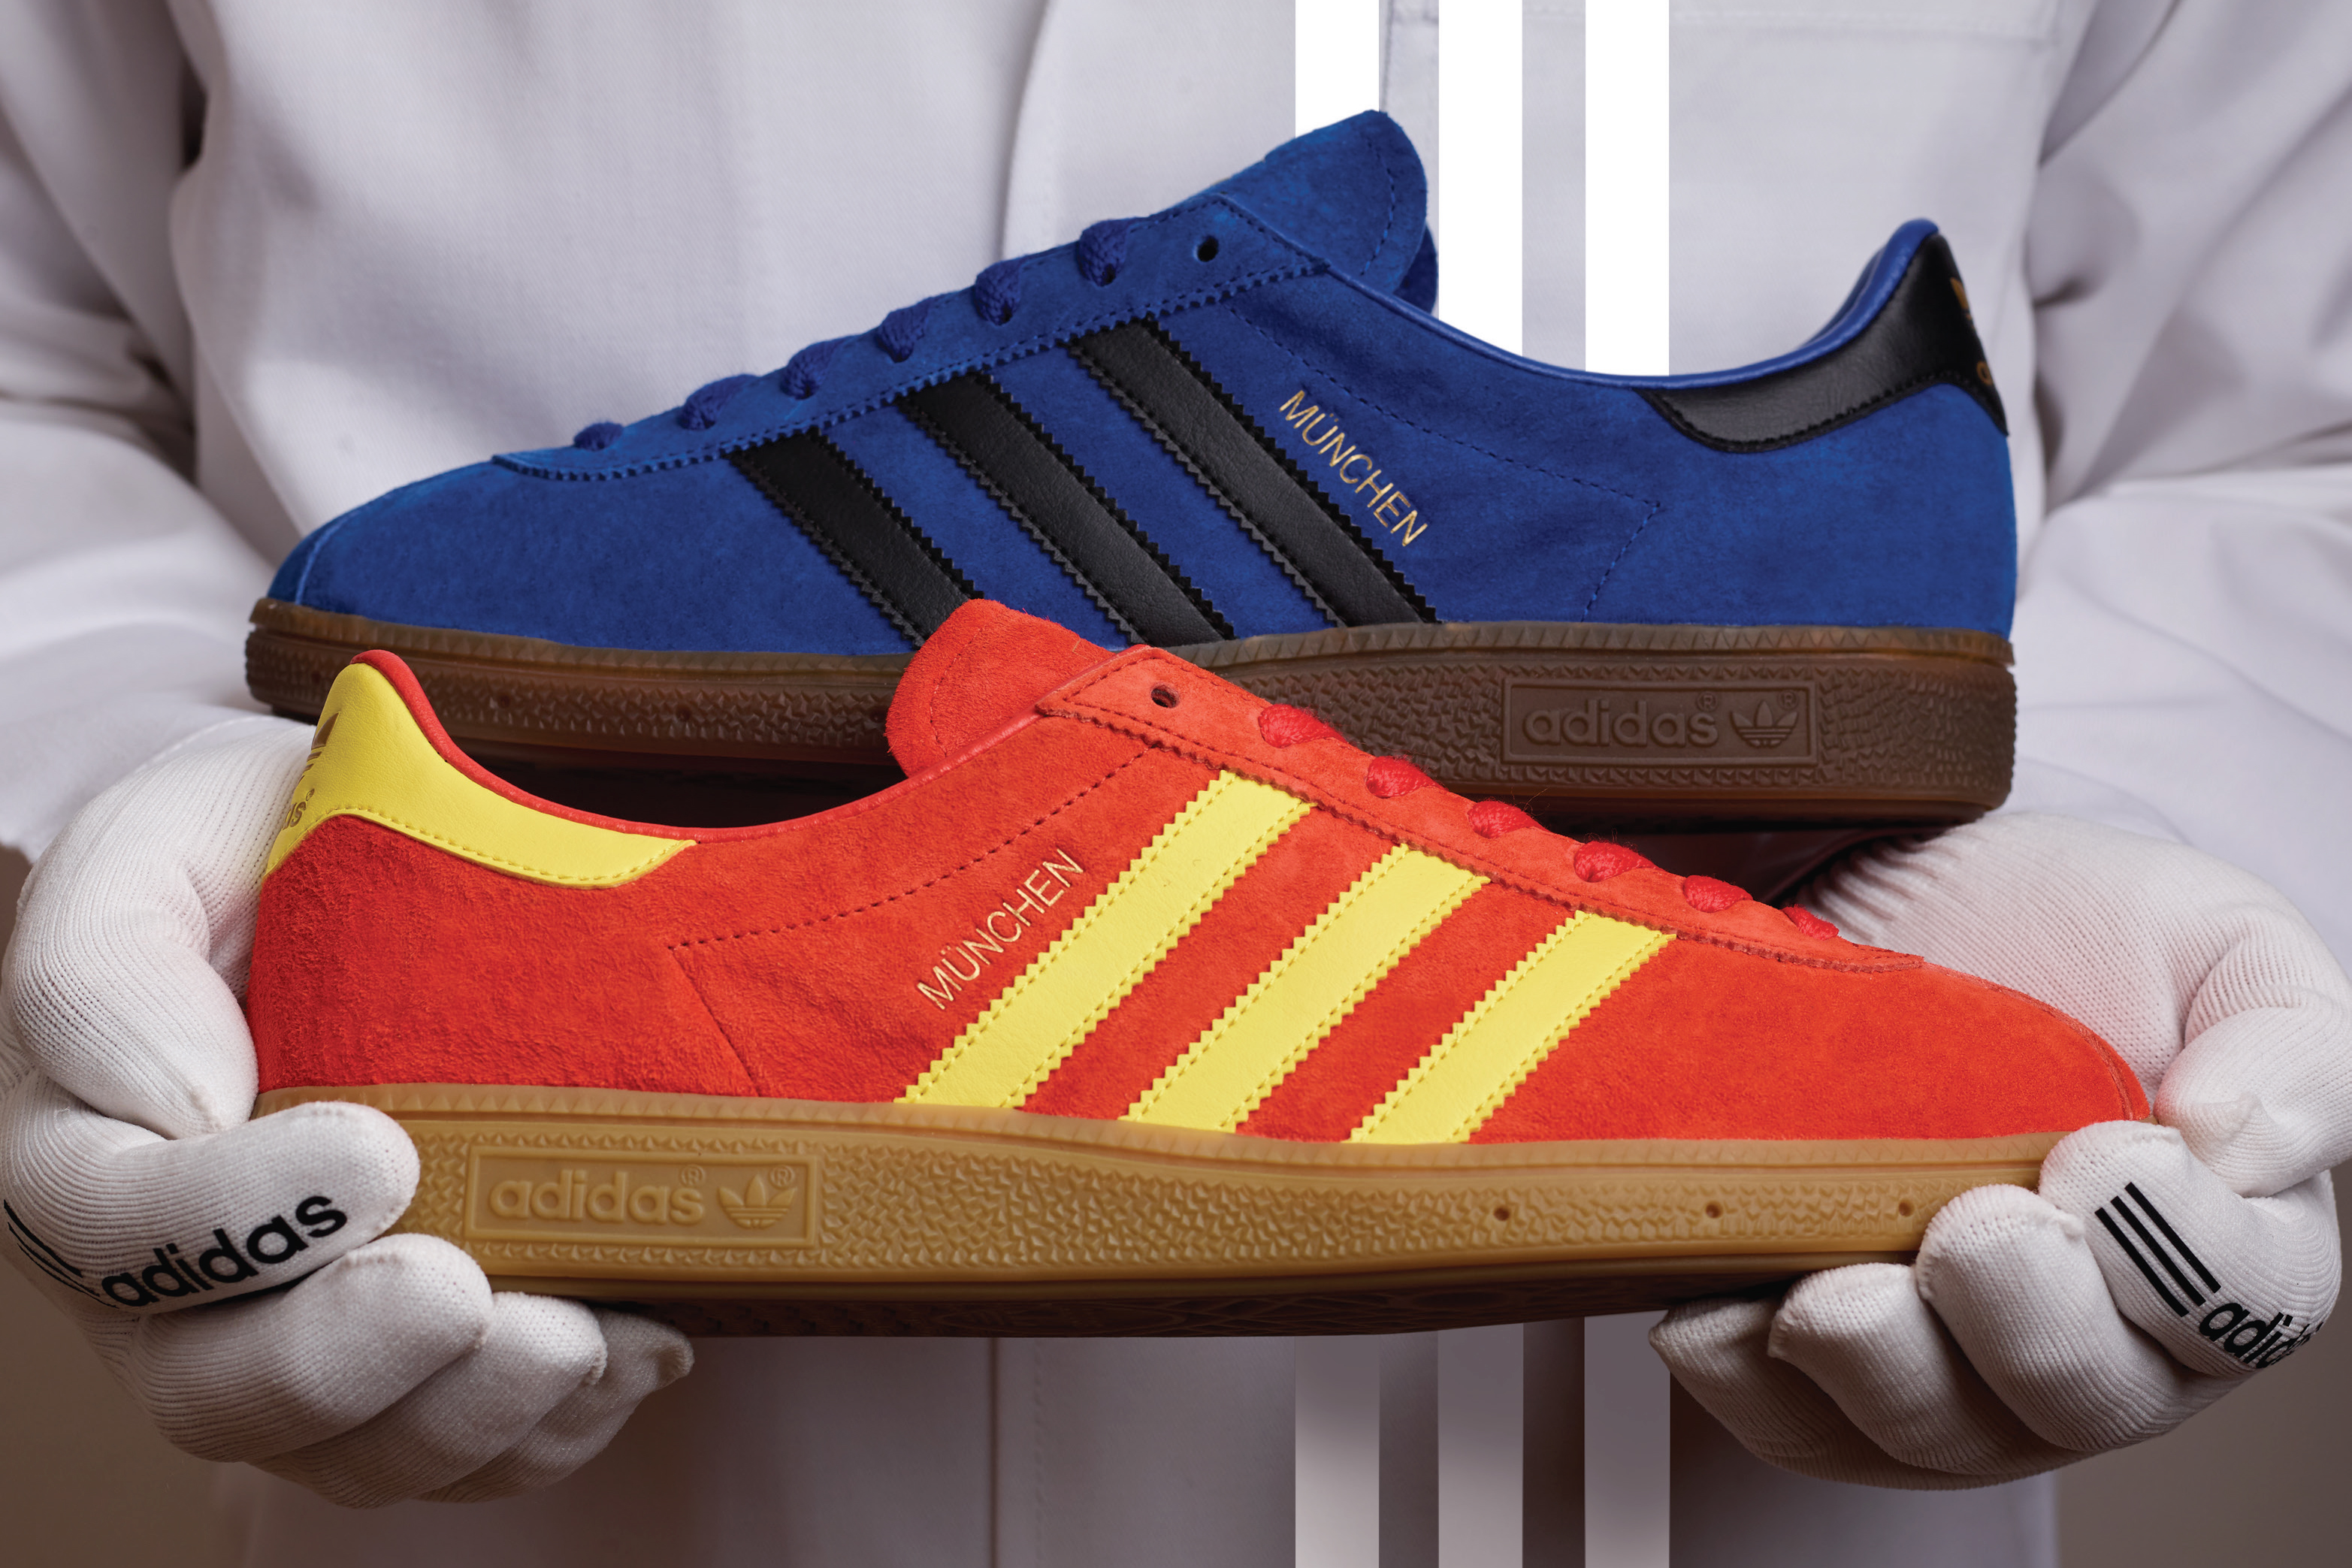 The München is a silhouette that seems to mean a lot to avid trainer  collectors 07aaccbbd8c3